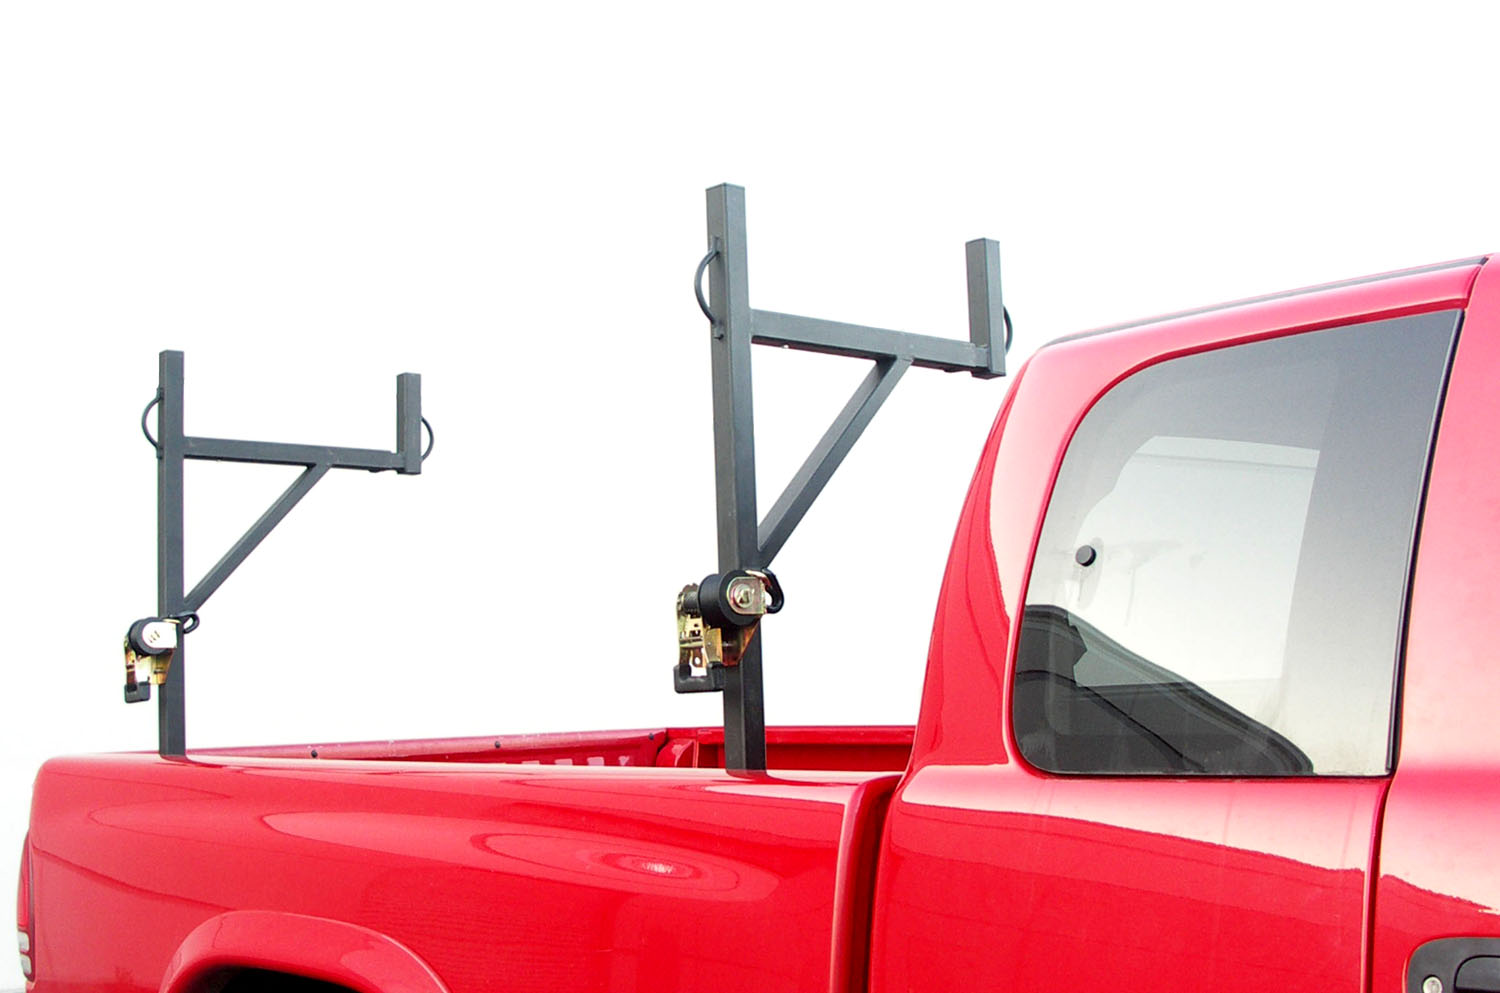 The Sidewinder Ratchet Rack Incorporates IMPORTANT SAFETY and CONVENIENCE FEATURES